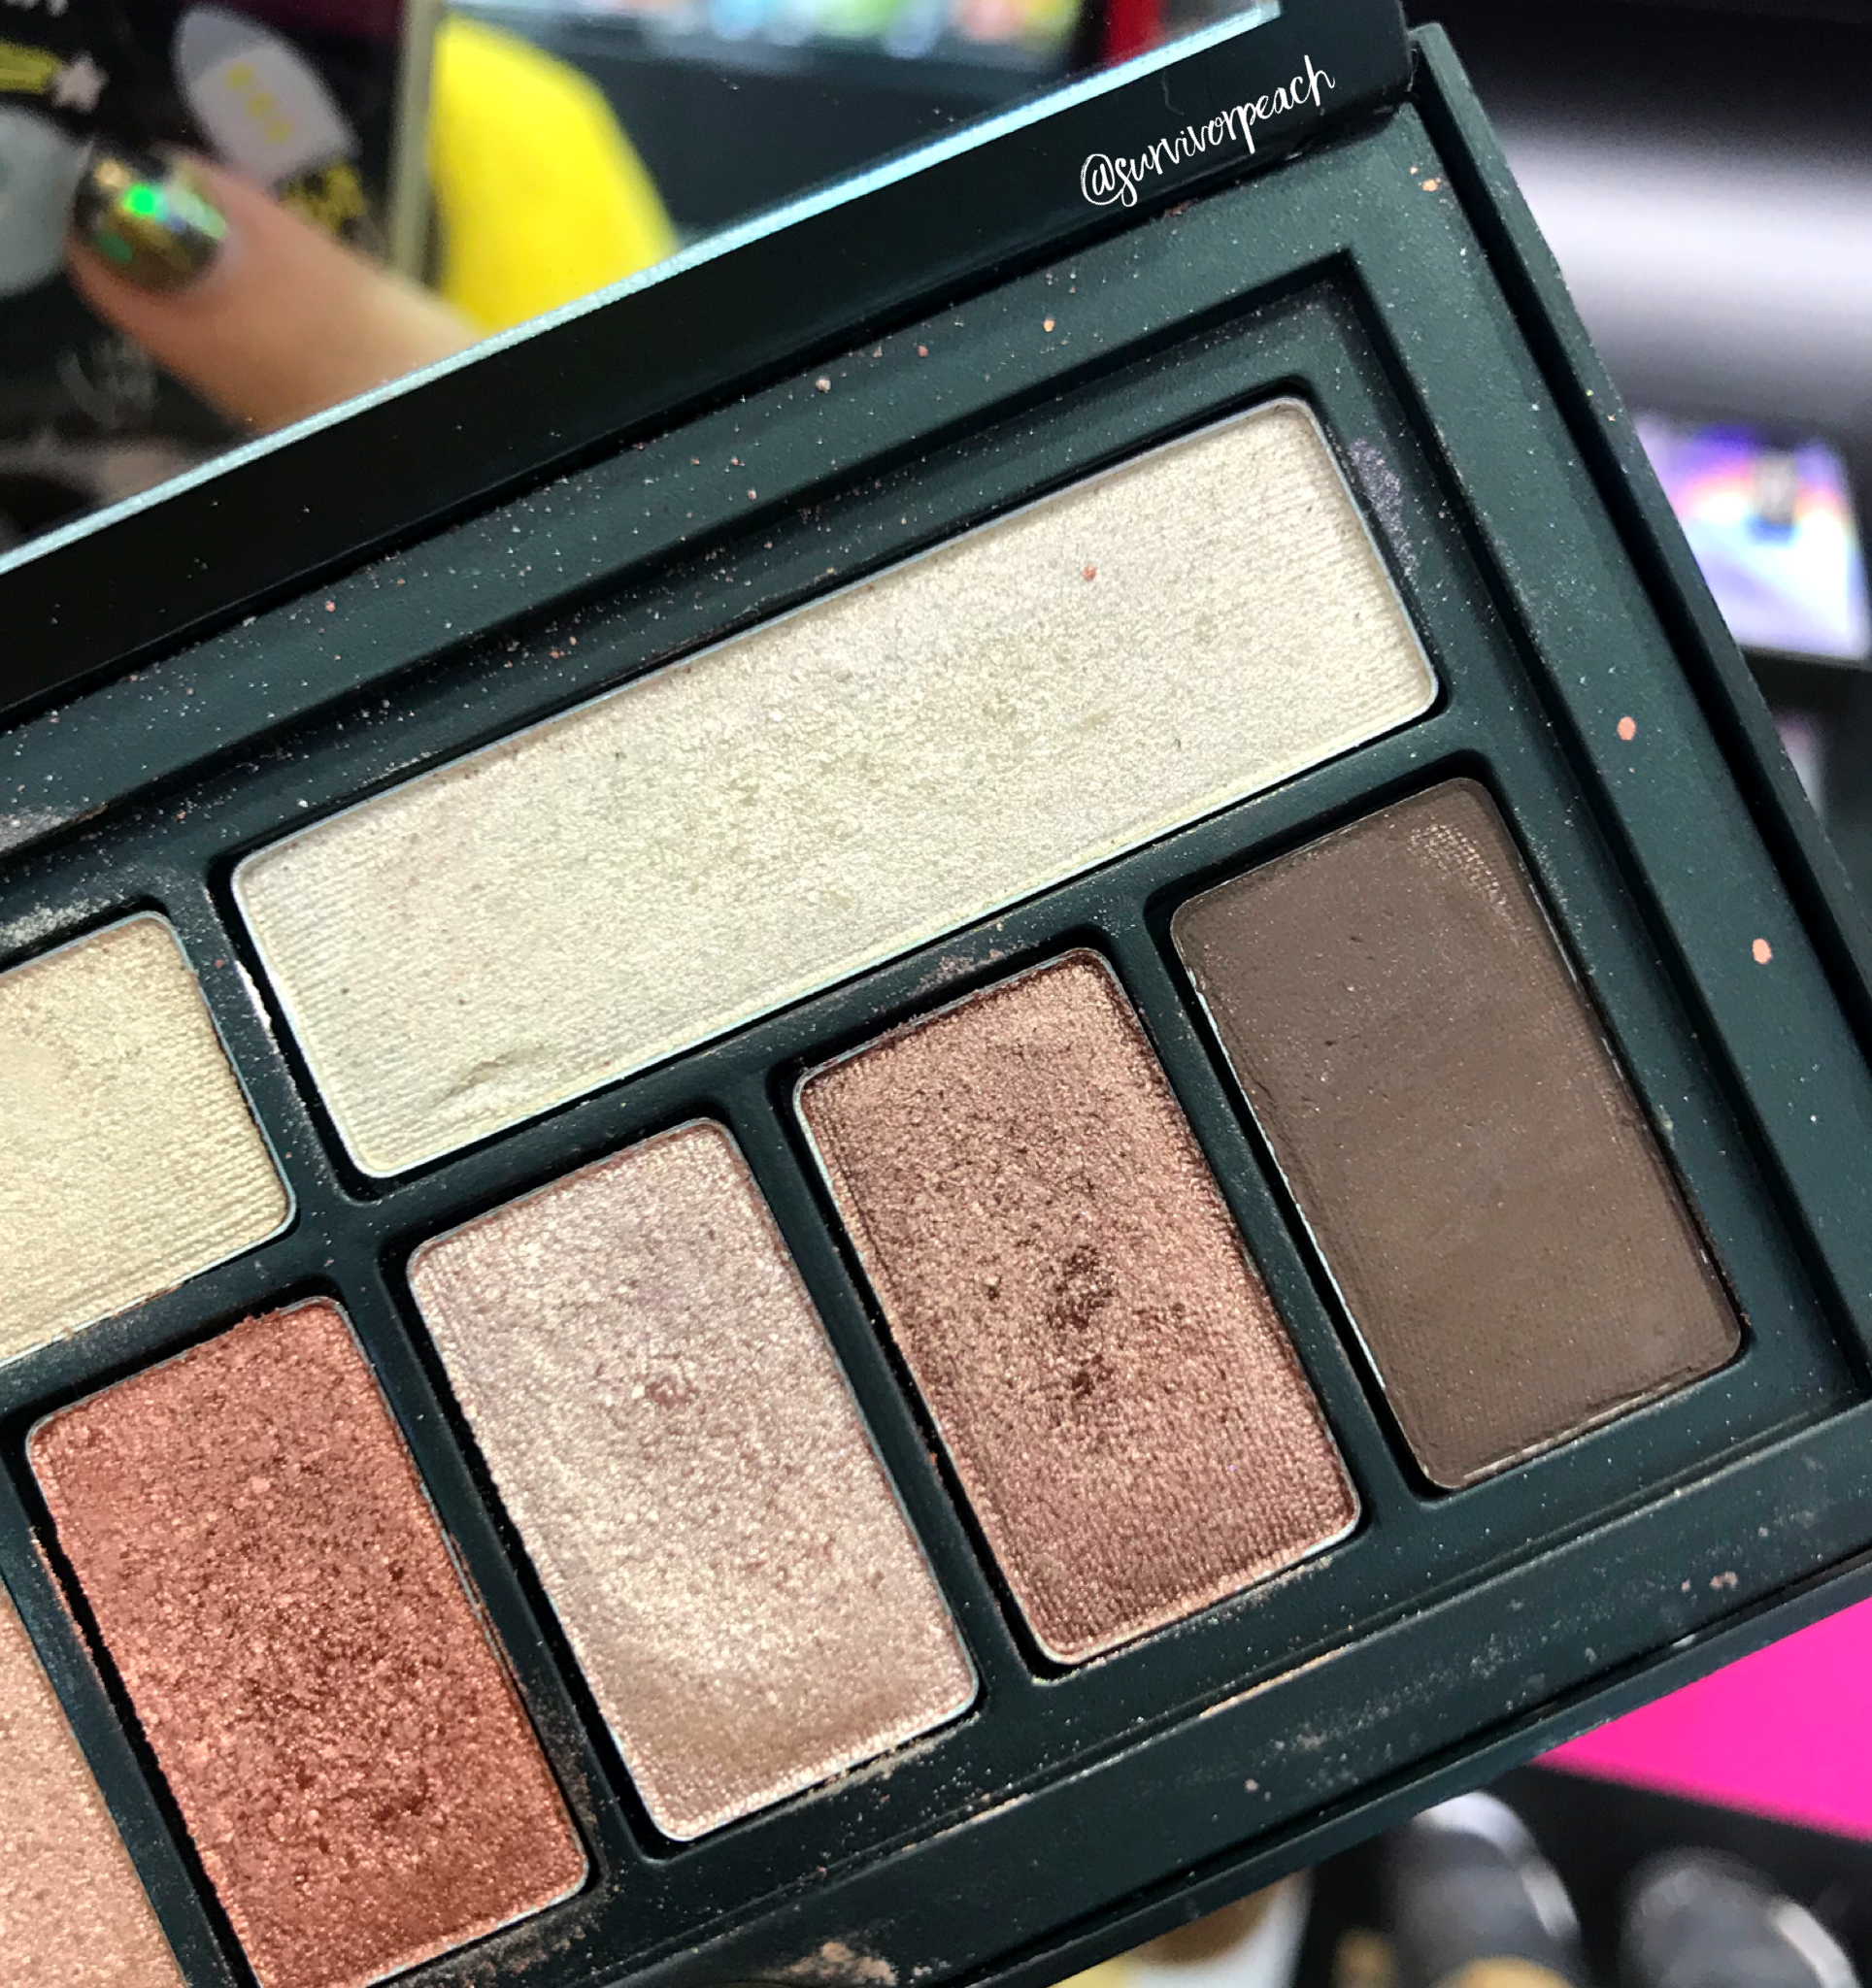 Smashbox Covershot Eyeshadow palette - Petal Metal